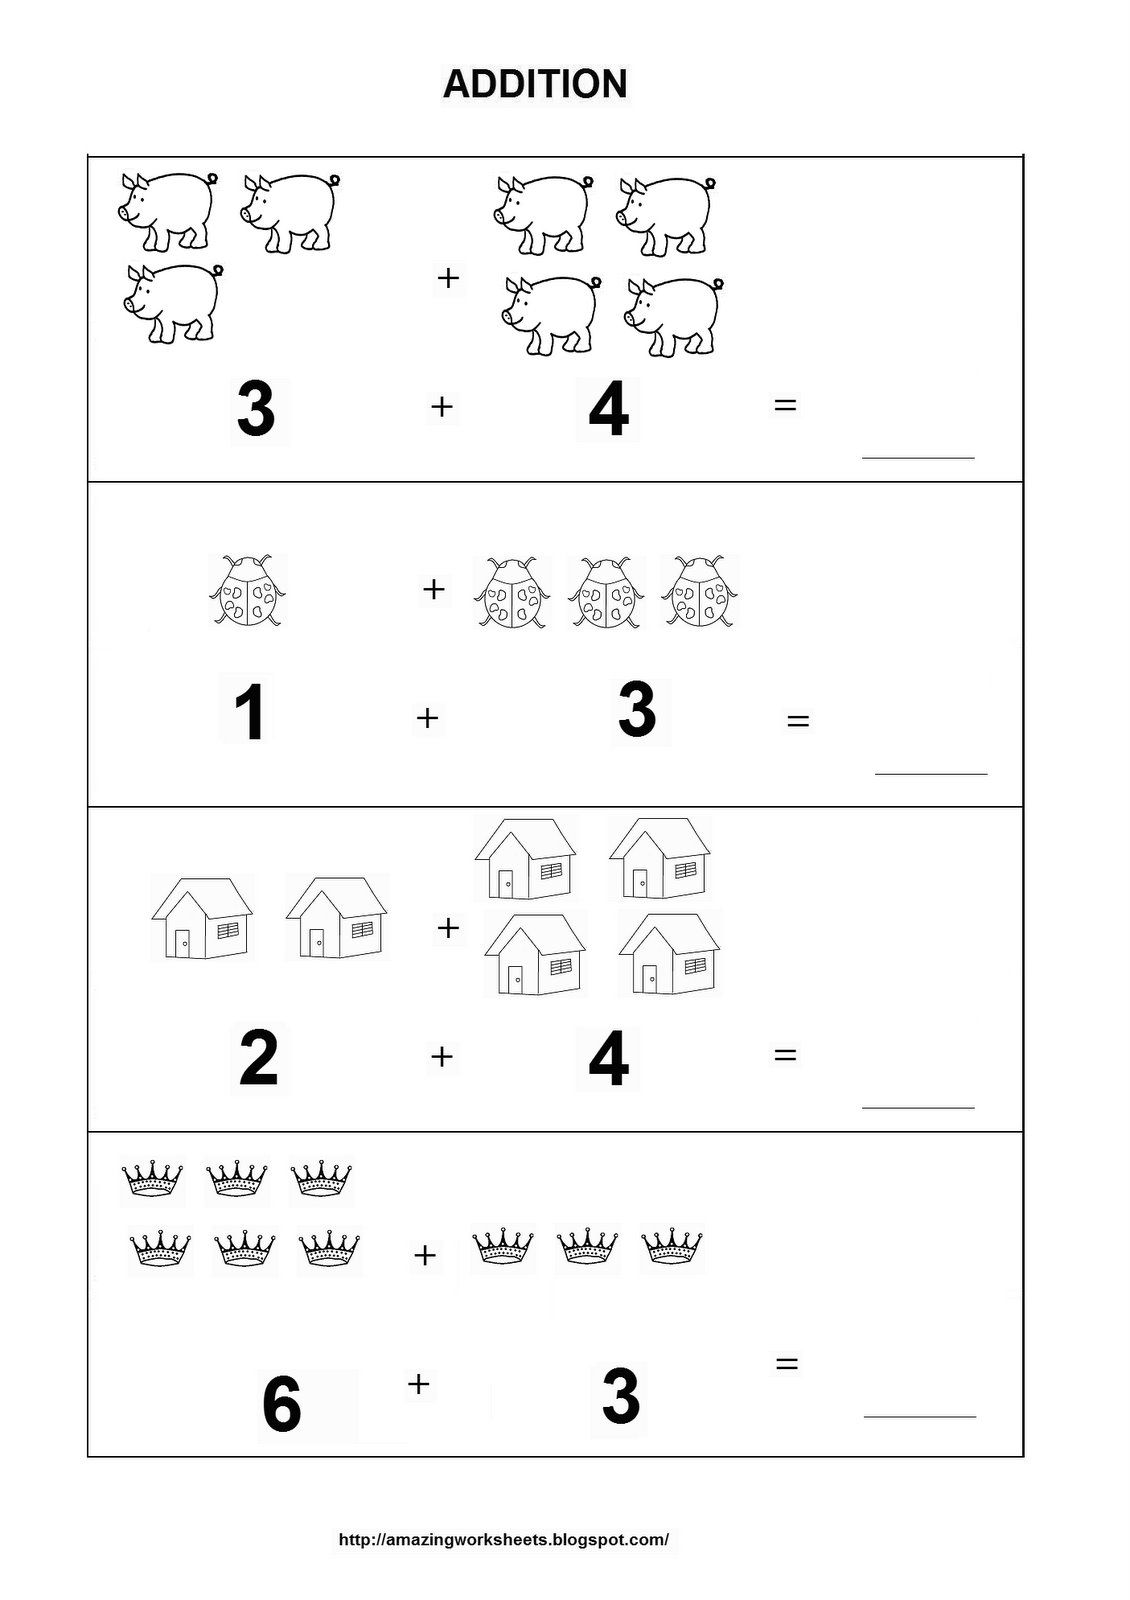 math worksheet : addition worksheets and worksheets on pinterest : Addition Worksheets For Preschoolers